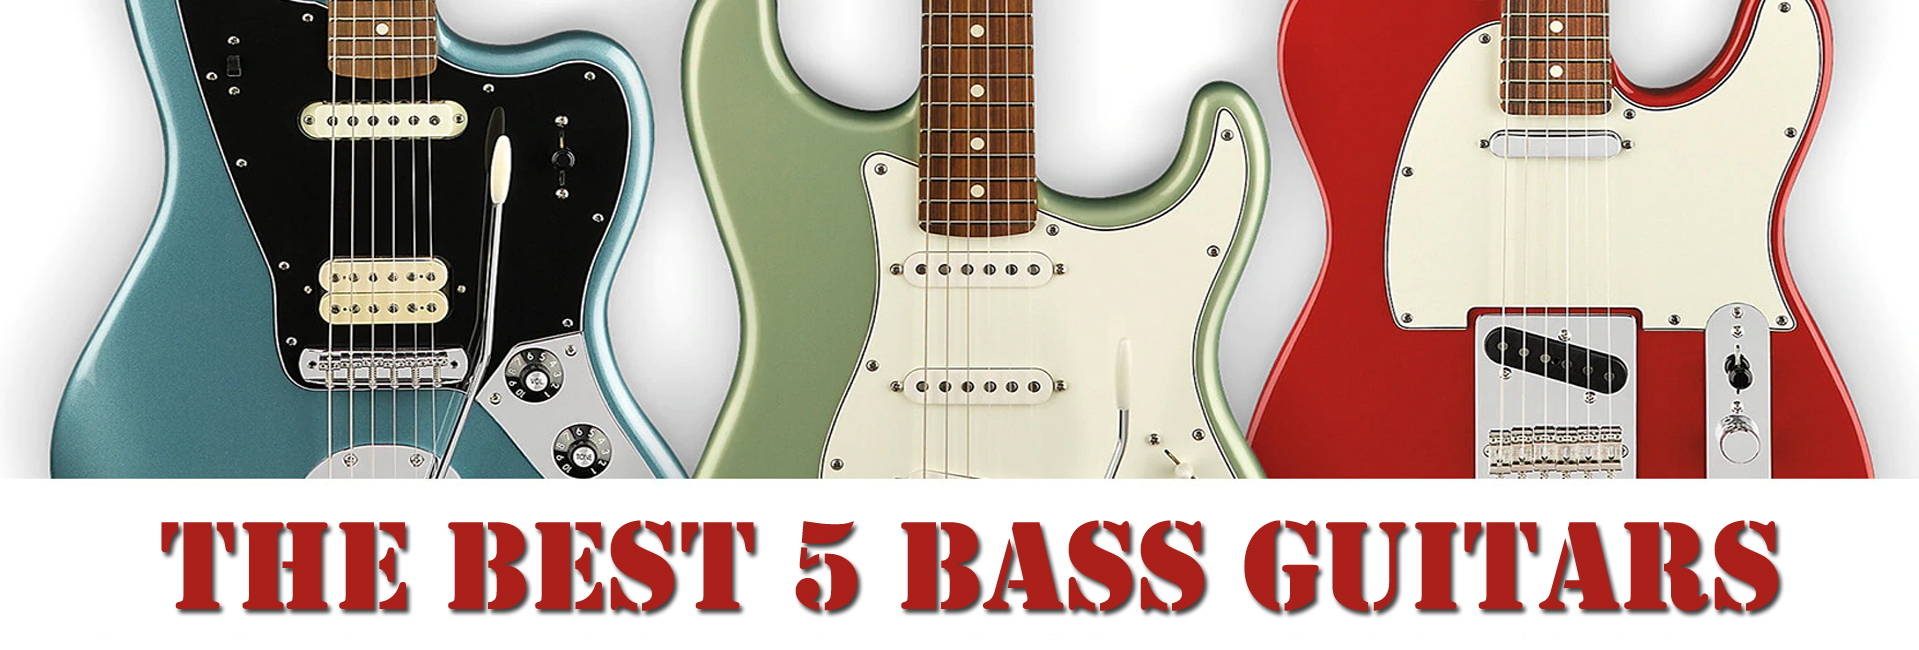 The Best 5 Bass Guitars of 2020 - Top 5 Rated Reviews